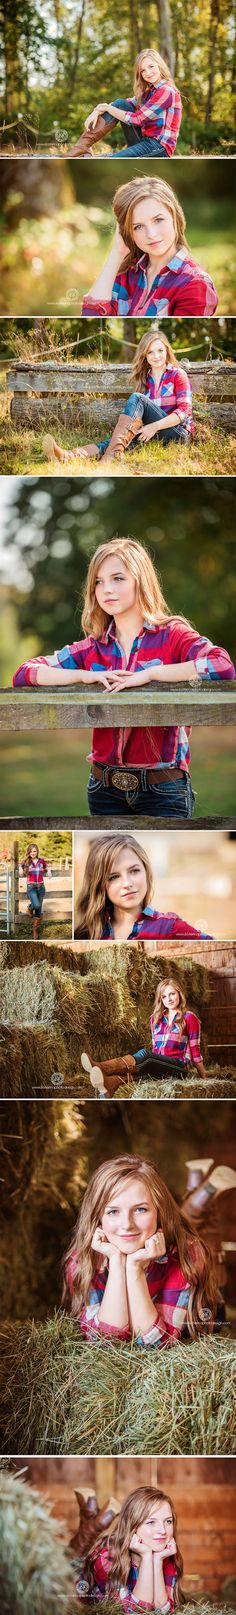 #senior #portrait #poses #girls